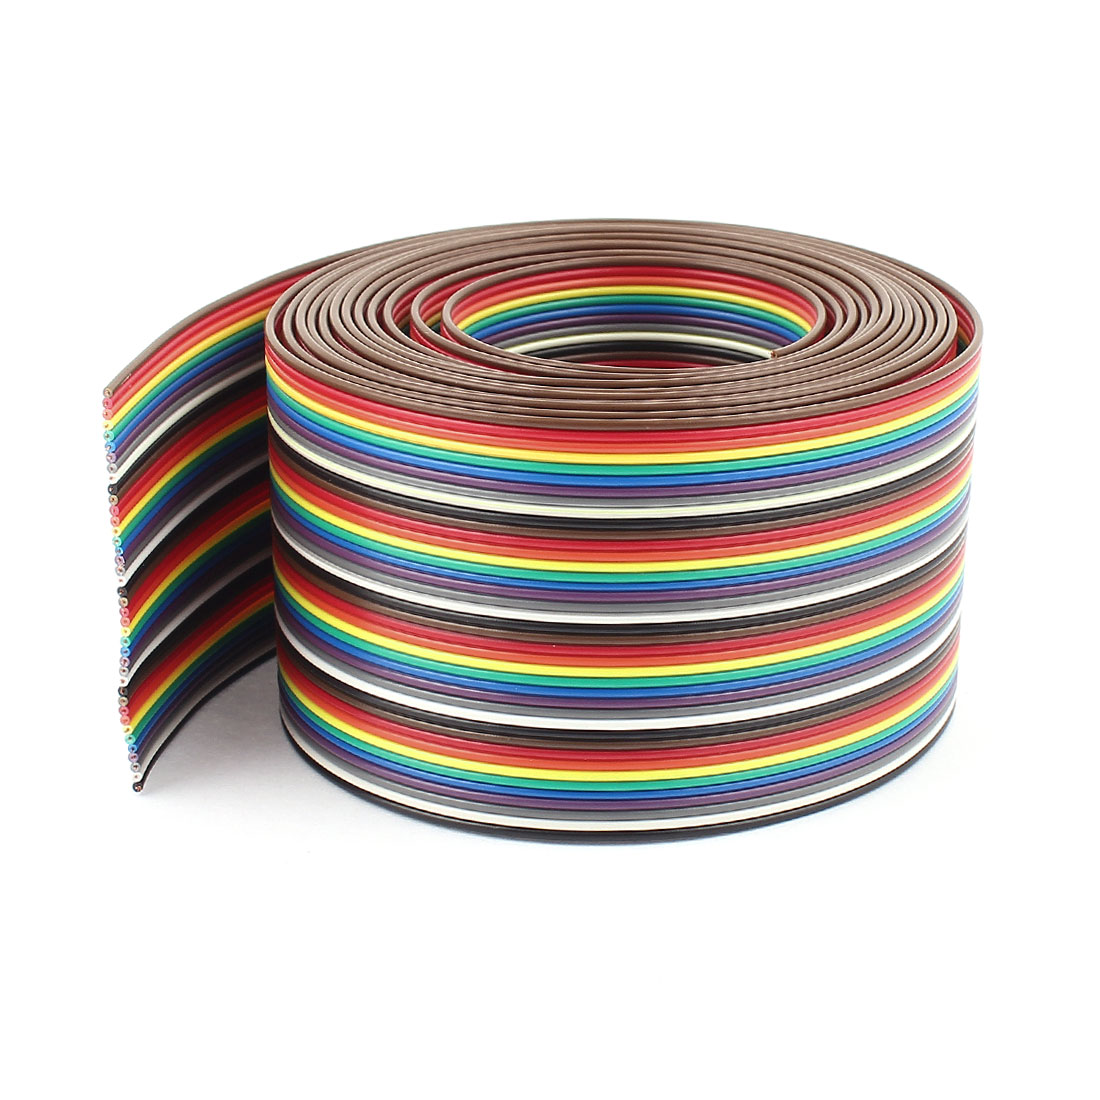 10ft 40 Way 40-Pin Rainbow Color Flat Ribbon Cable IDC Wire 1.37mm Pitch